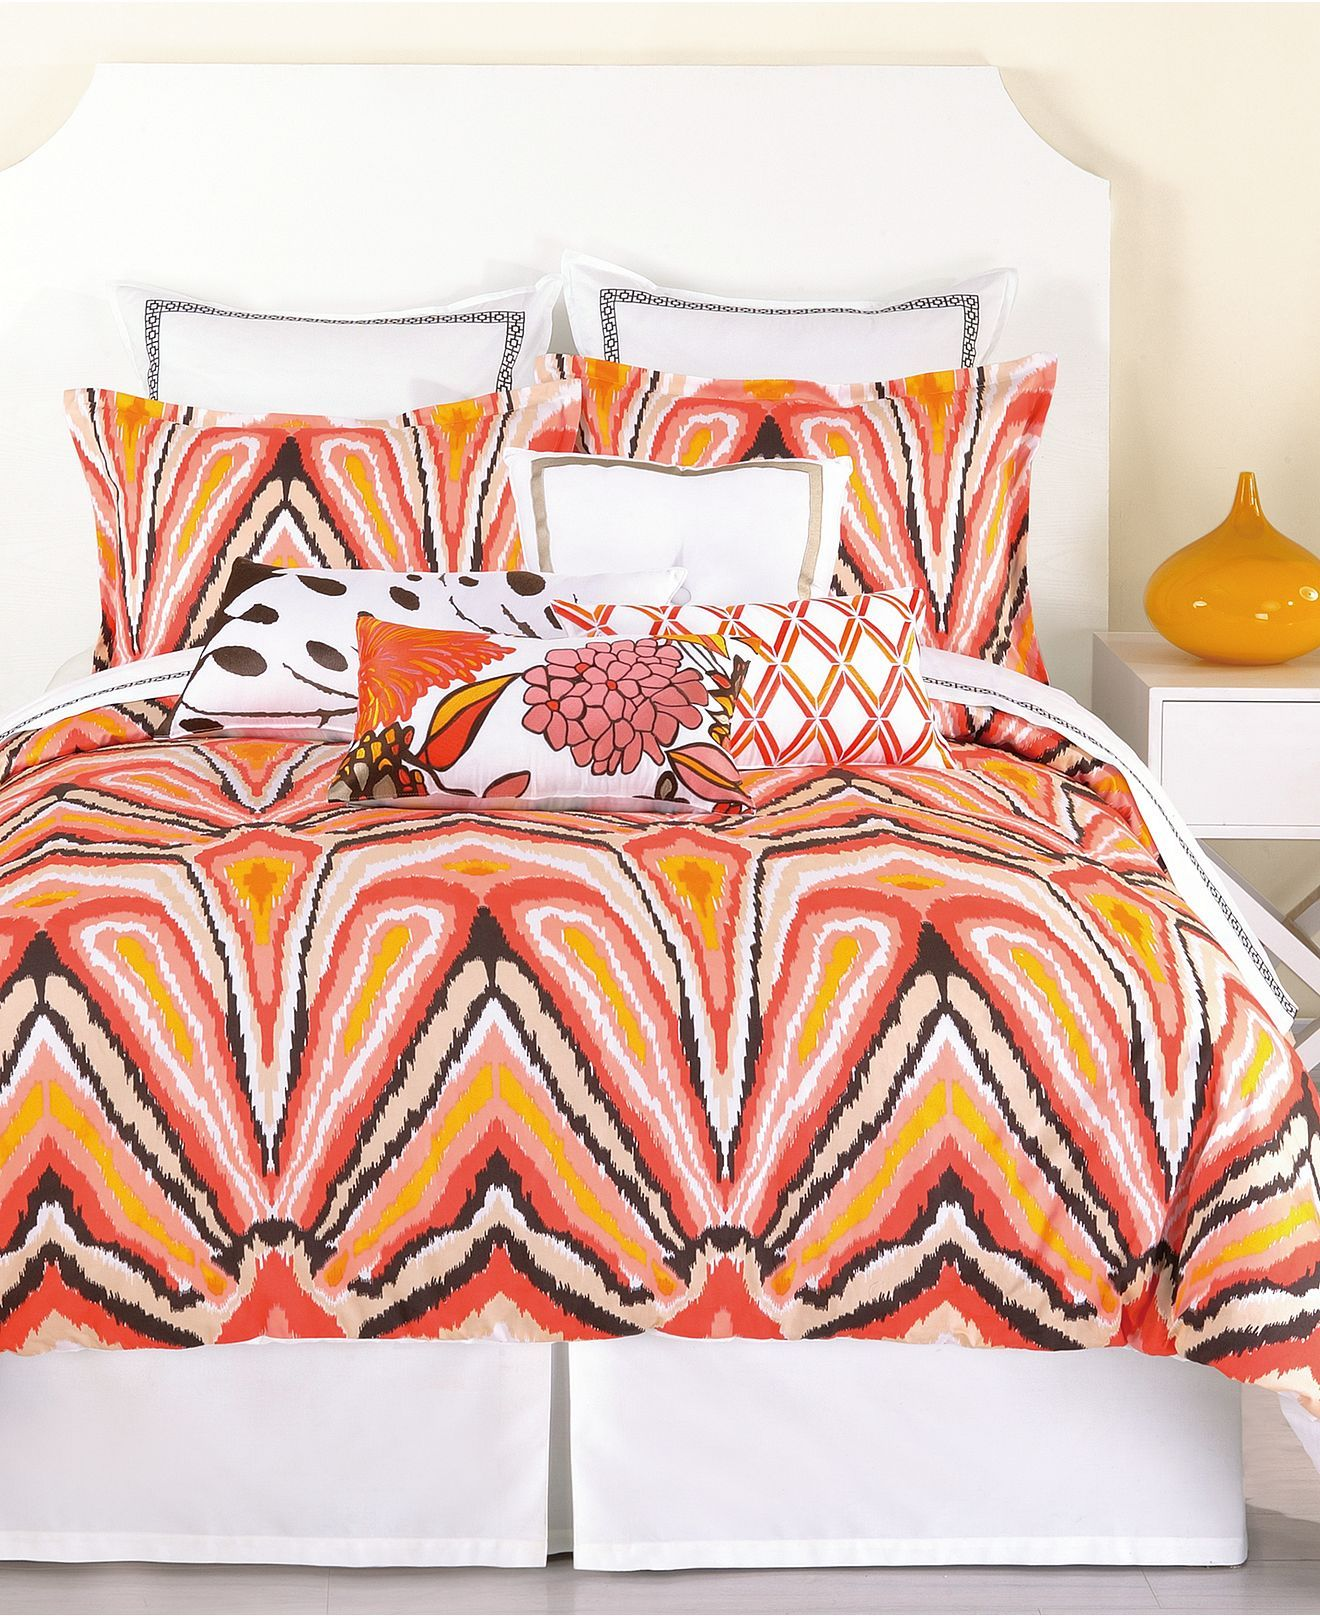 Trina Turk Bedding Peacock Punch Comforter And Duvet Cover Sets